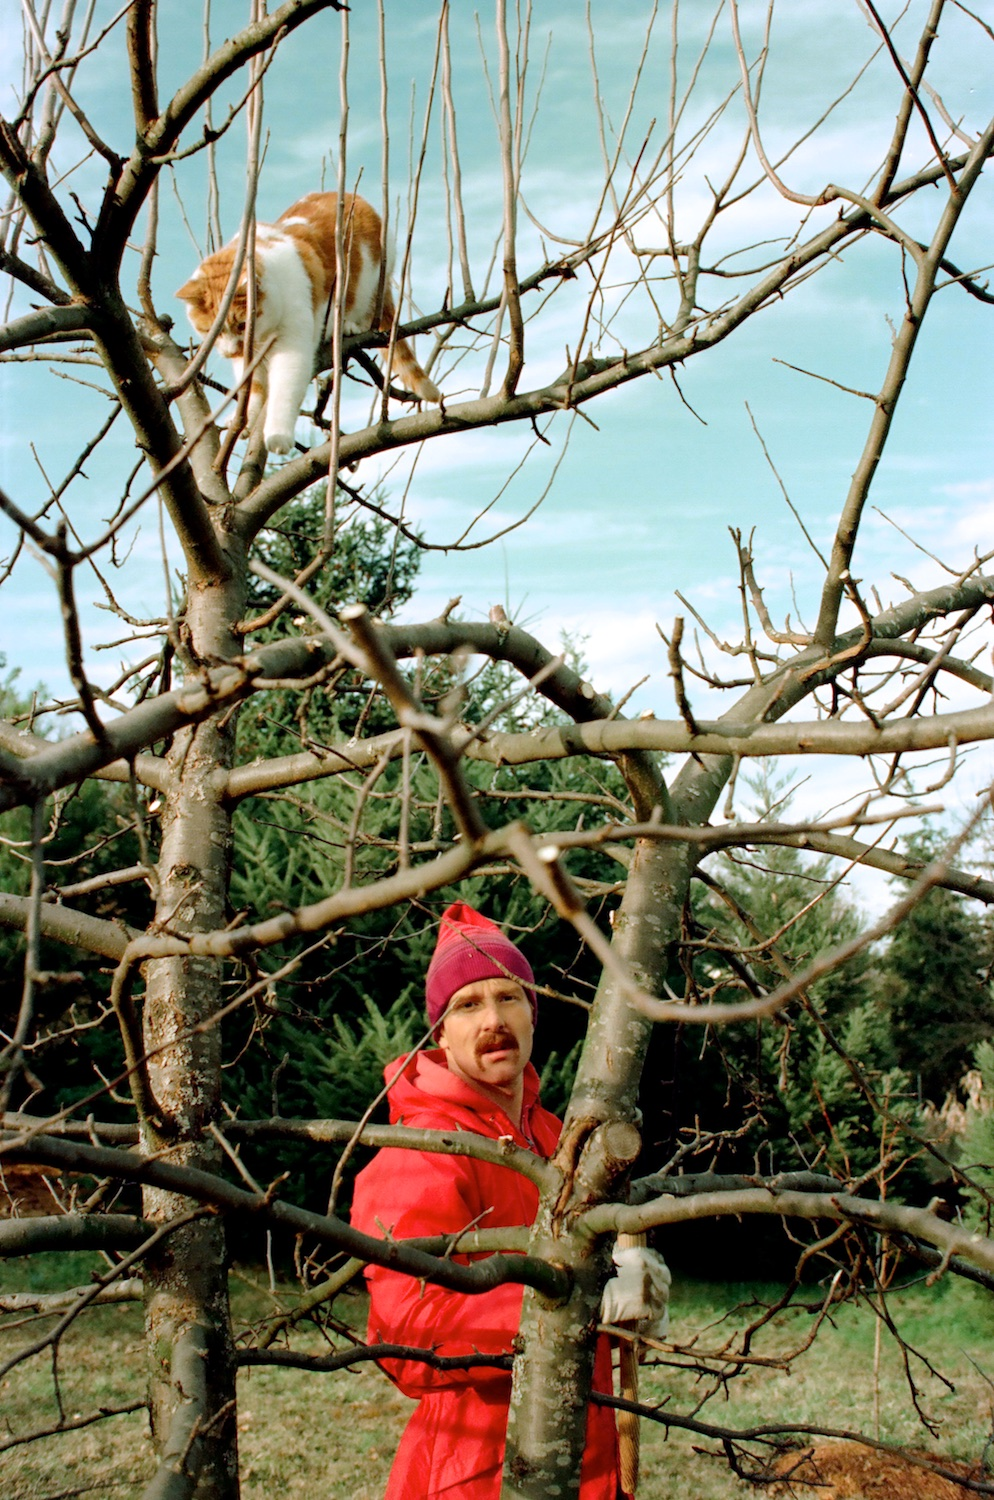 Apple tree pruning accommodated Archie's favorite fantasy:  Big cat in charge of the forest!